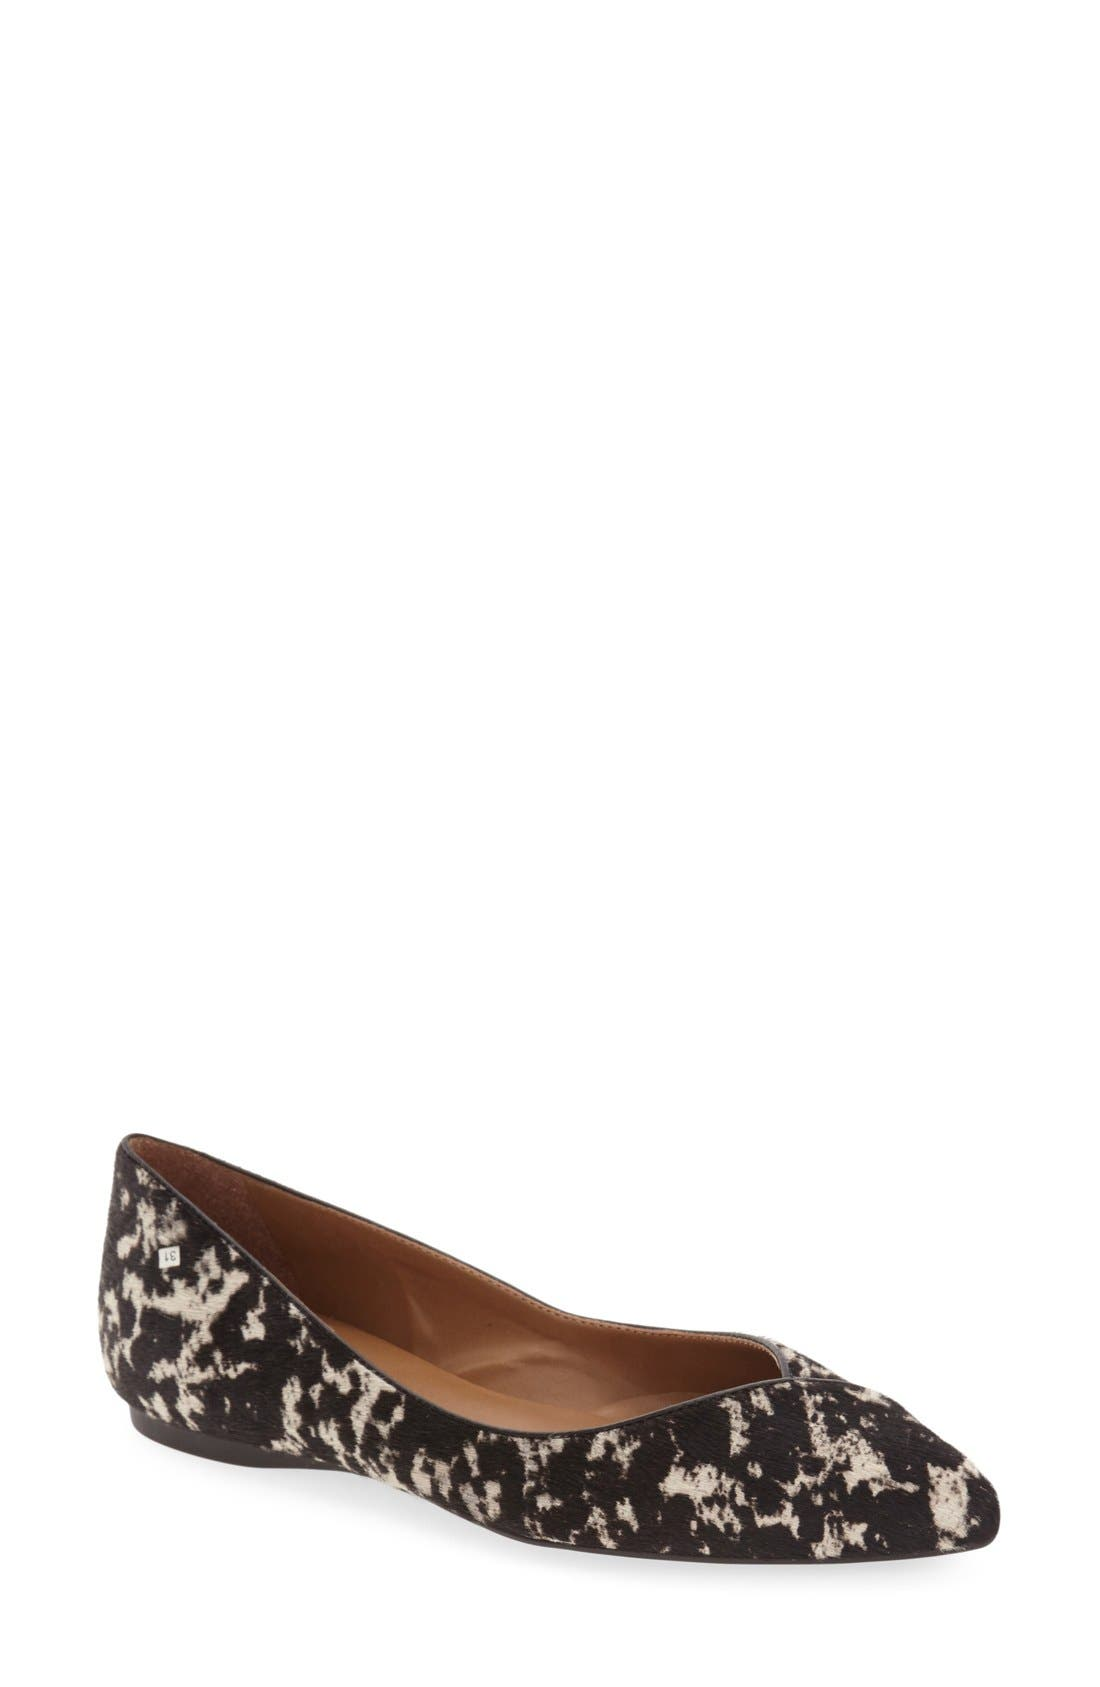 FRENCH SOLE 'Peppy' Pointy Toe Ballet Flat, Main, color, 005